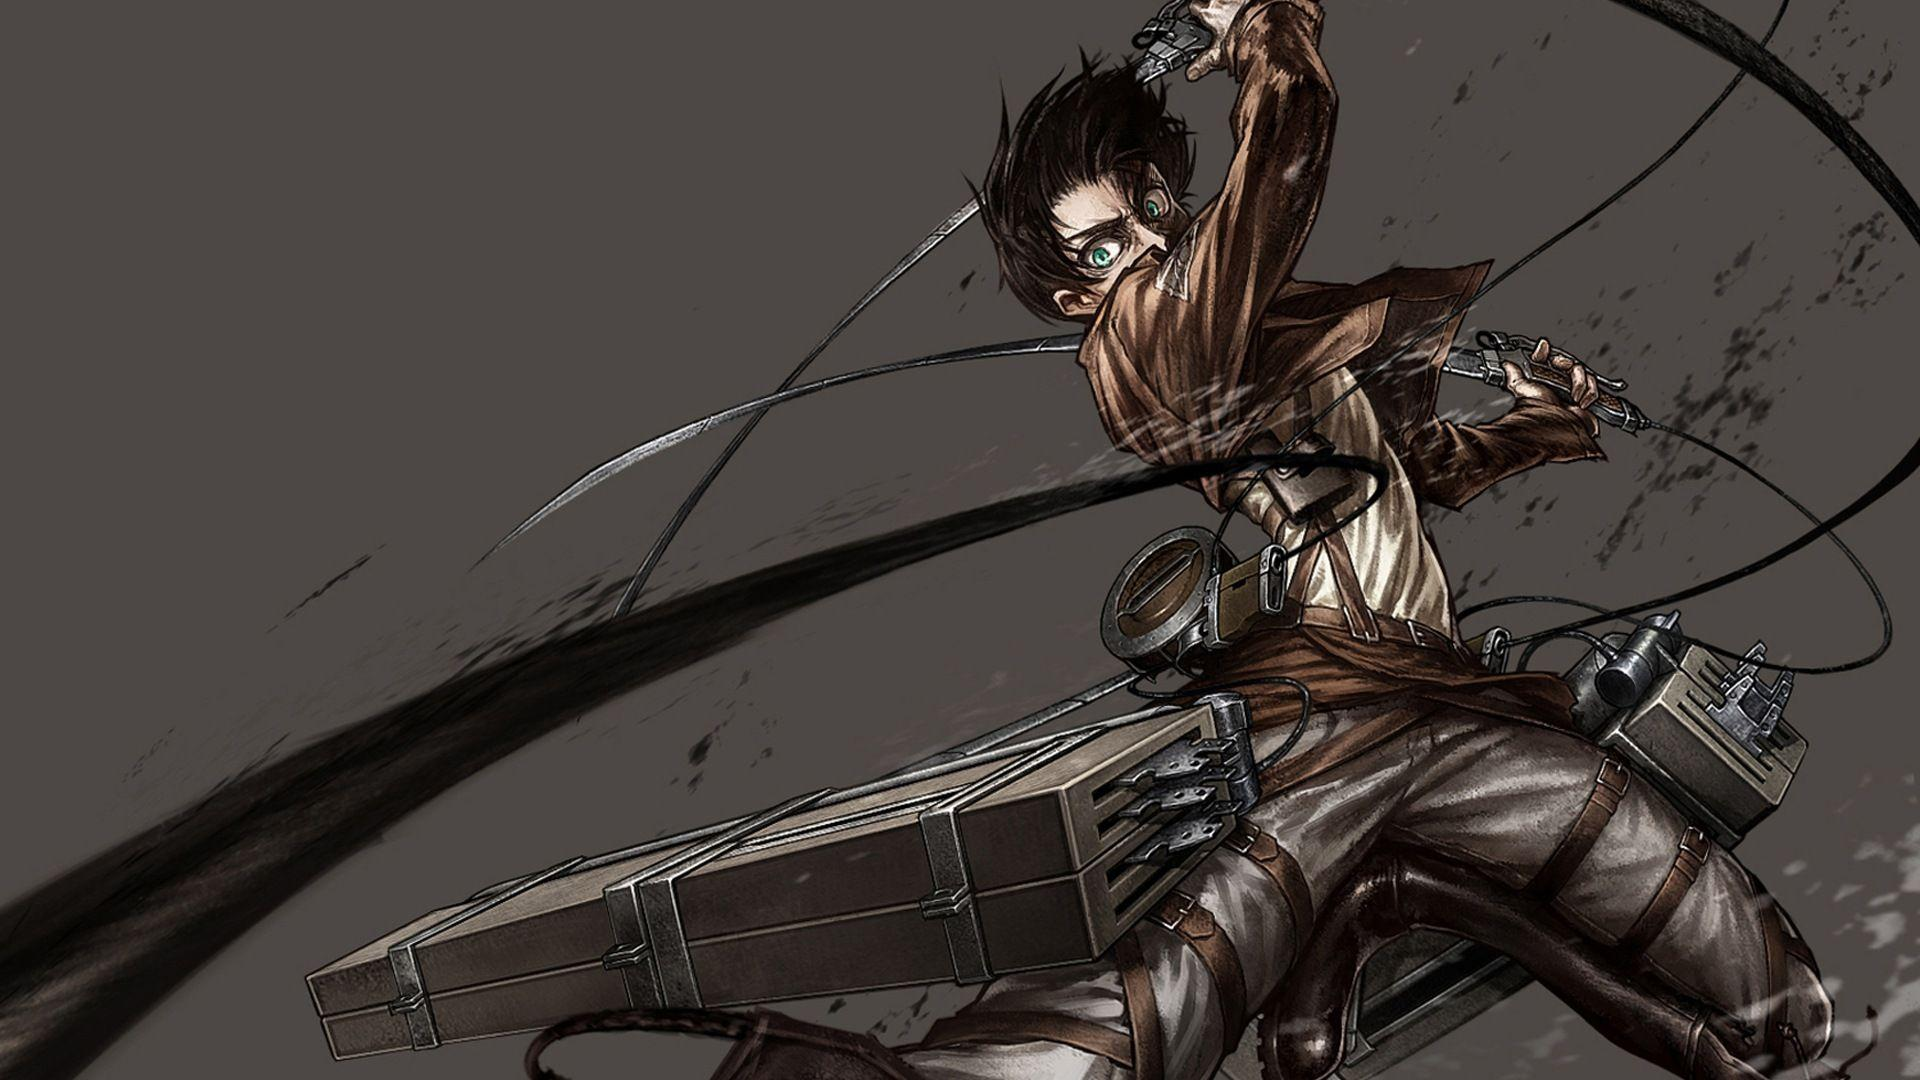 Eren Yeager 3DMG Attack on Titan Wallpapers